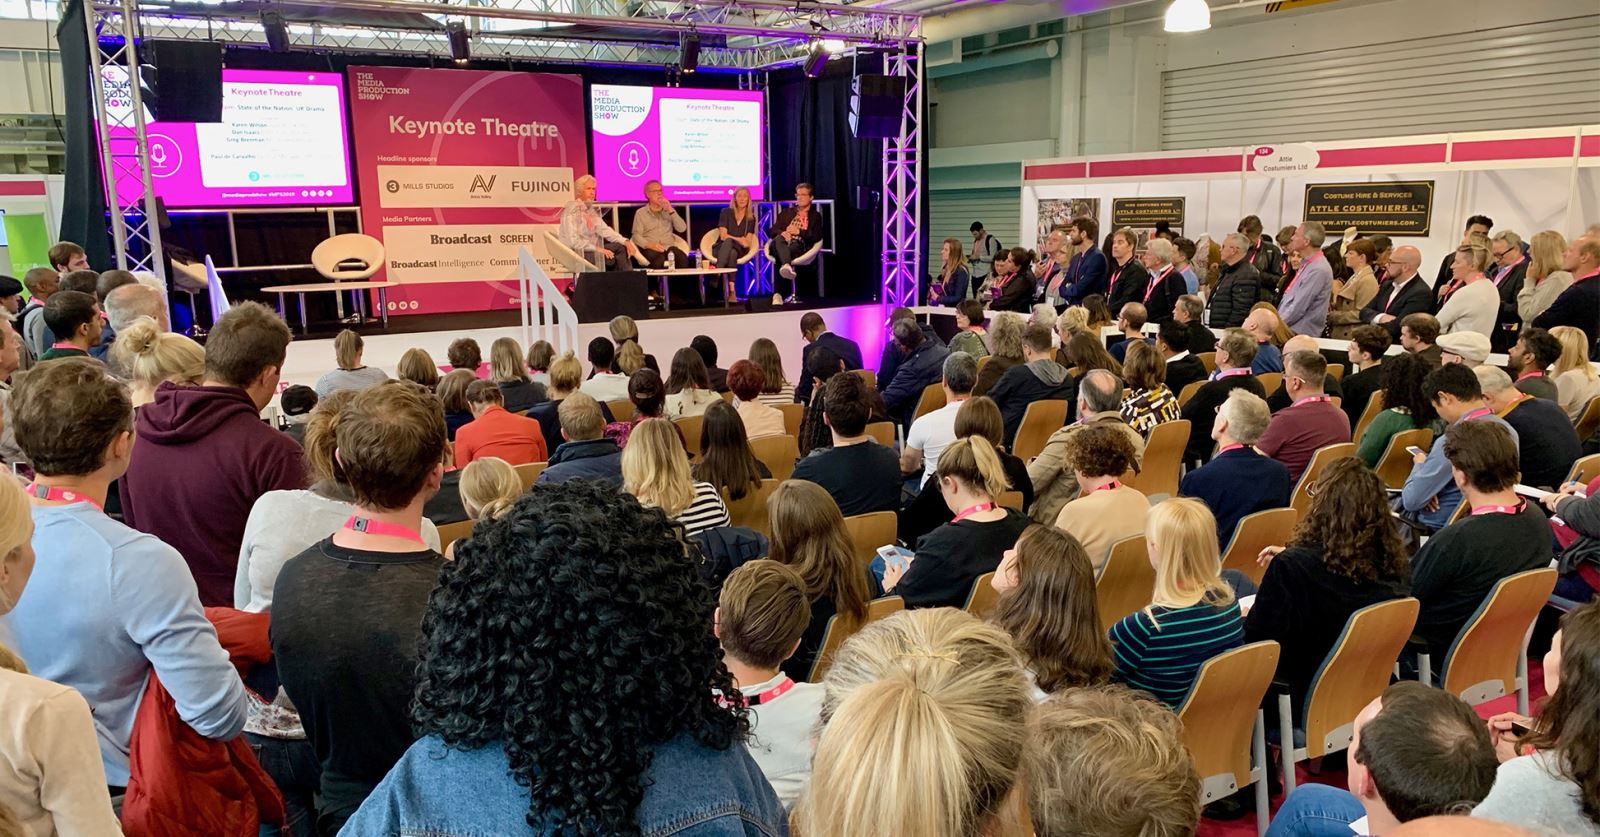 Record crowds attended this year's very successful Media Production Show meaning the Keynote Theatre was constantly full